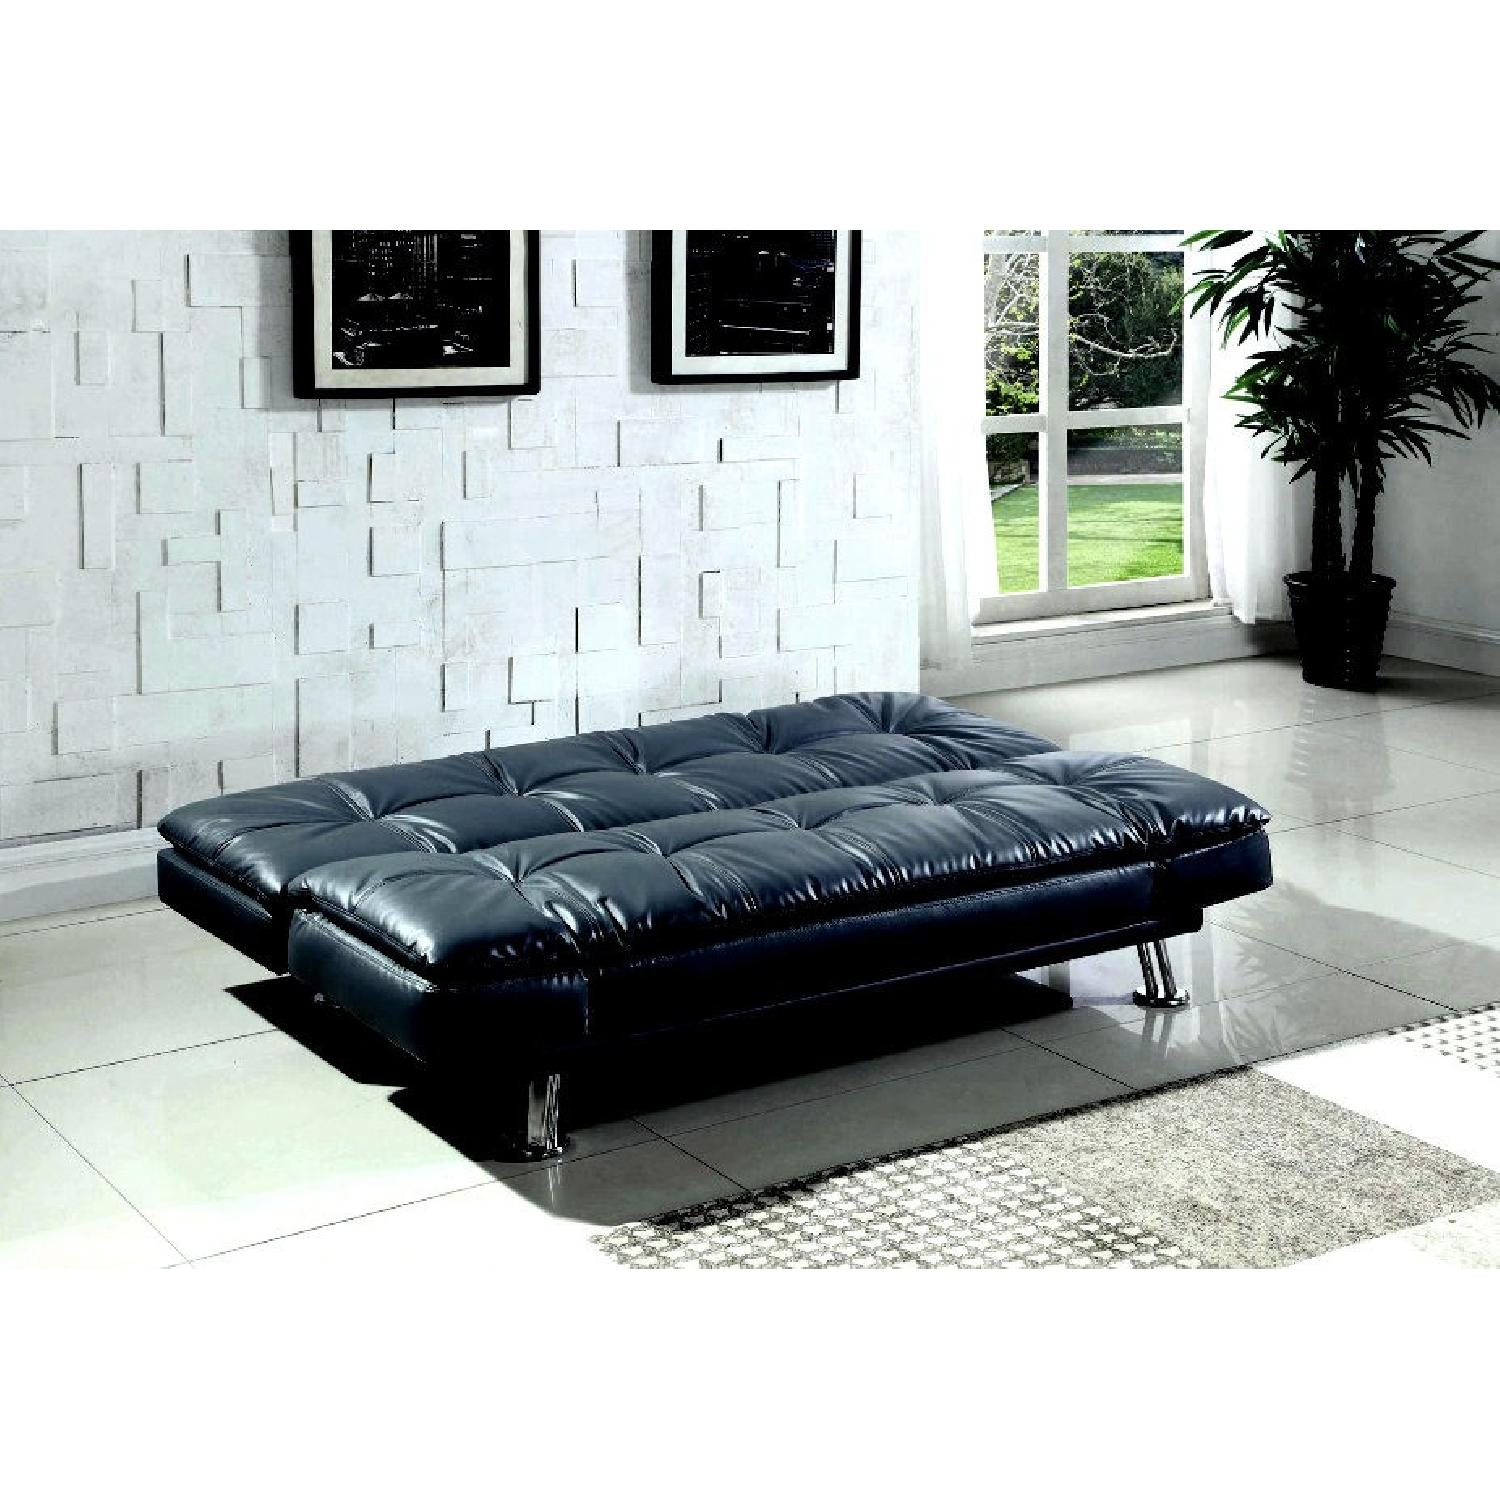 Coaster Contemporary Black Faux Leather Sofa Bed - image-2